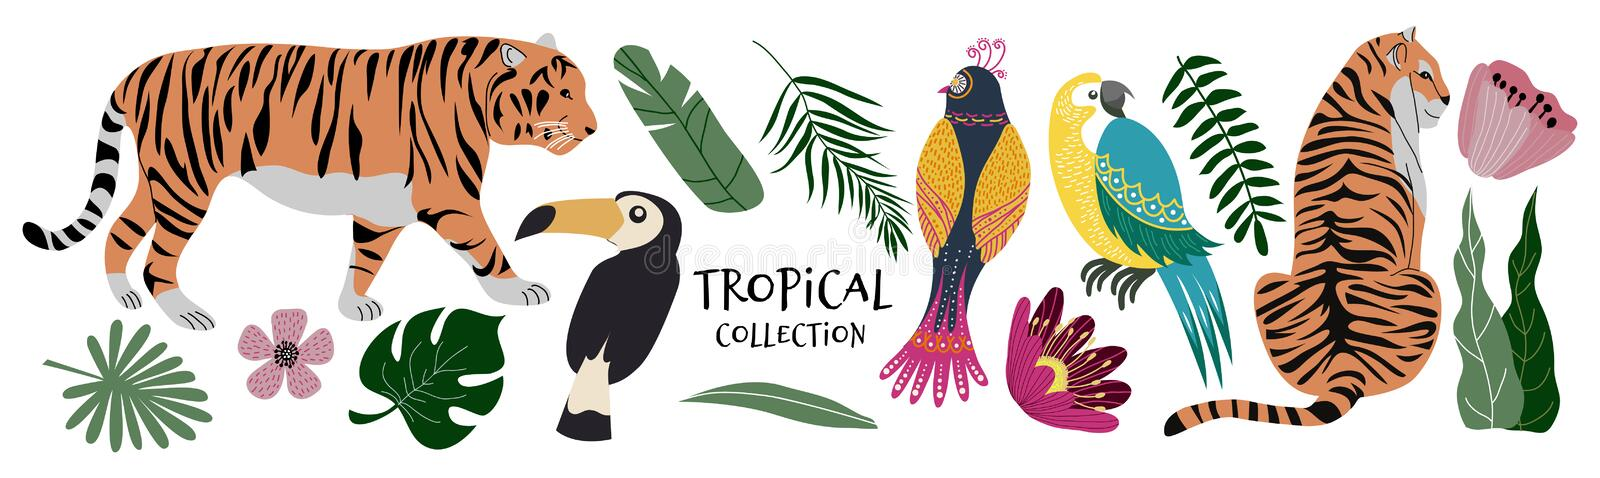 Tropical collection exotic flowers, leaves, birds and tigers. Cute flat Vector isolated elements royalty free illustration